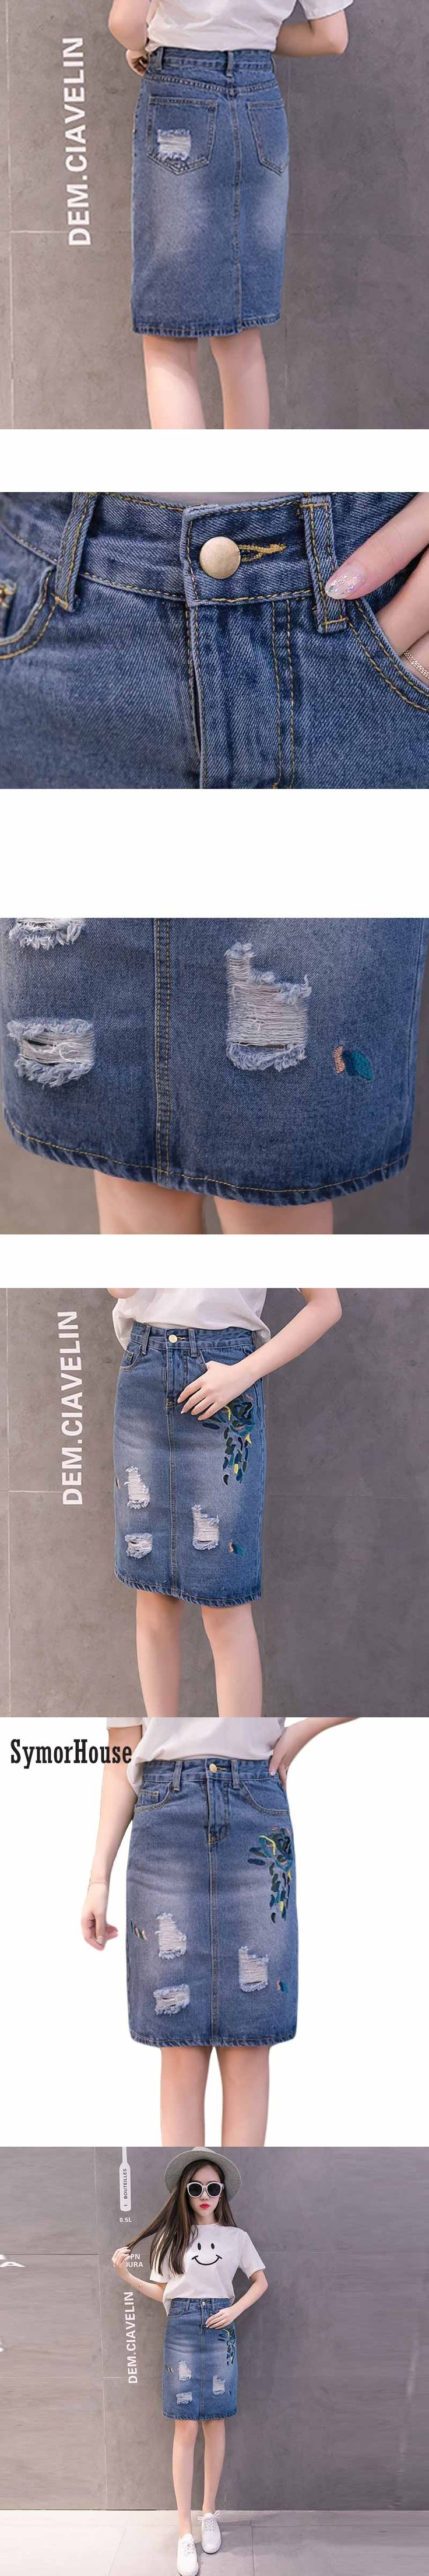 Plus Size Ladies Summer Skirt High Waist Vintage Floral Embroidery Sexy Midi Denim Skirt Fashion Casual back split Jeans skirts